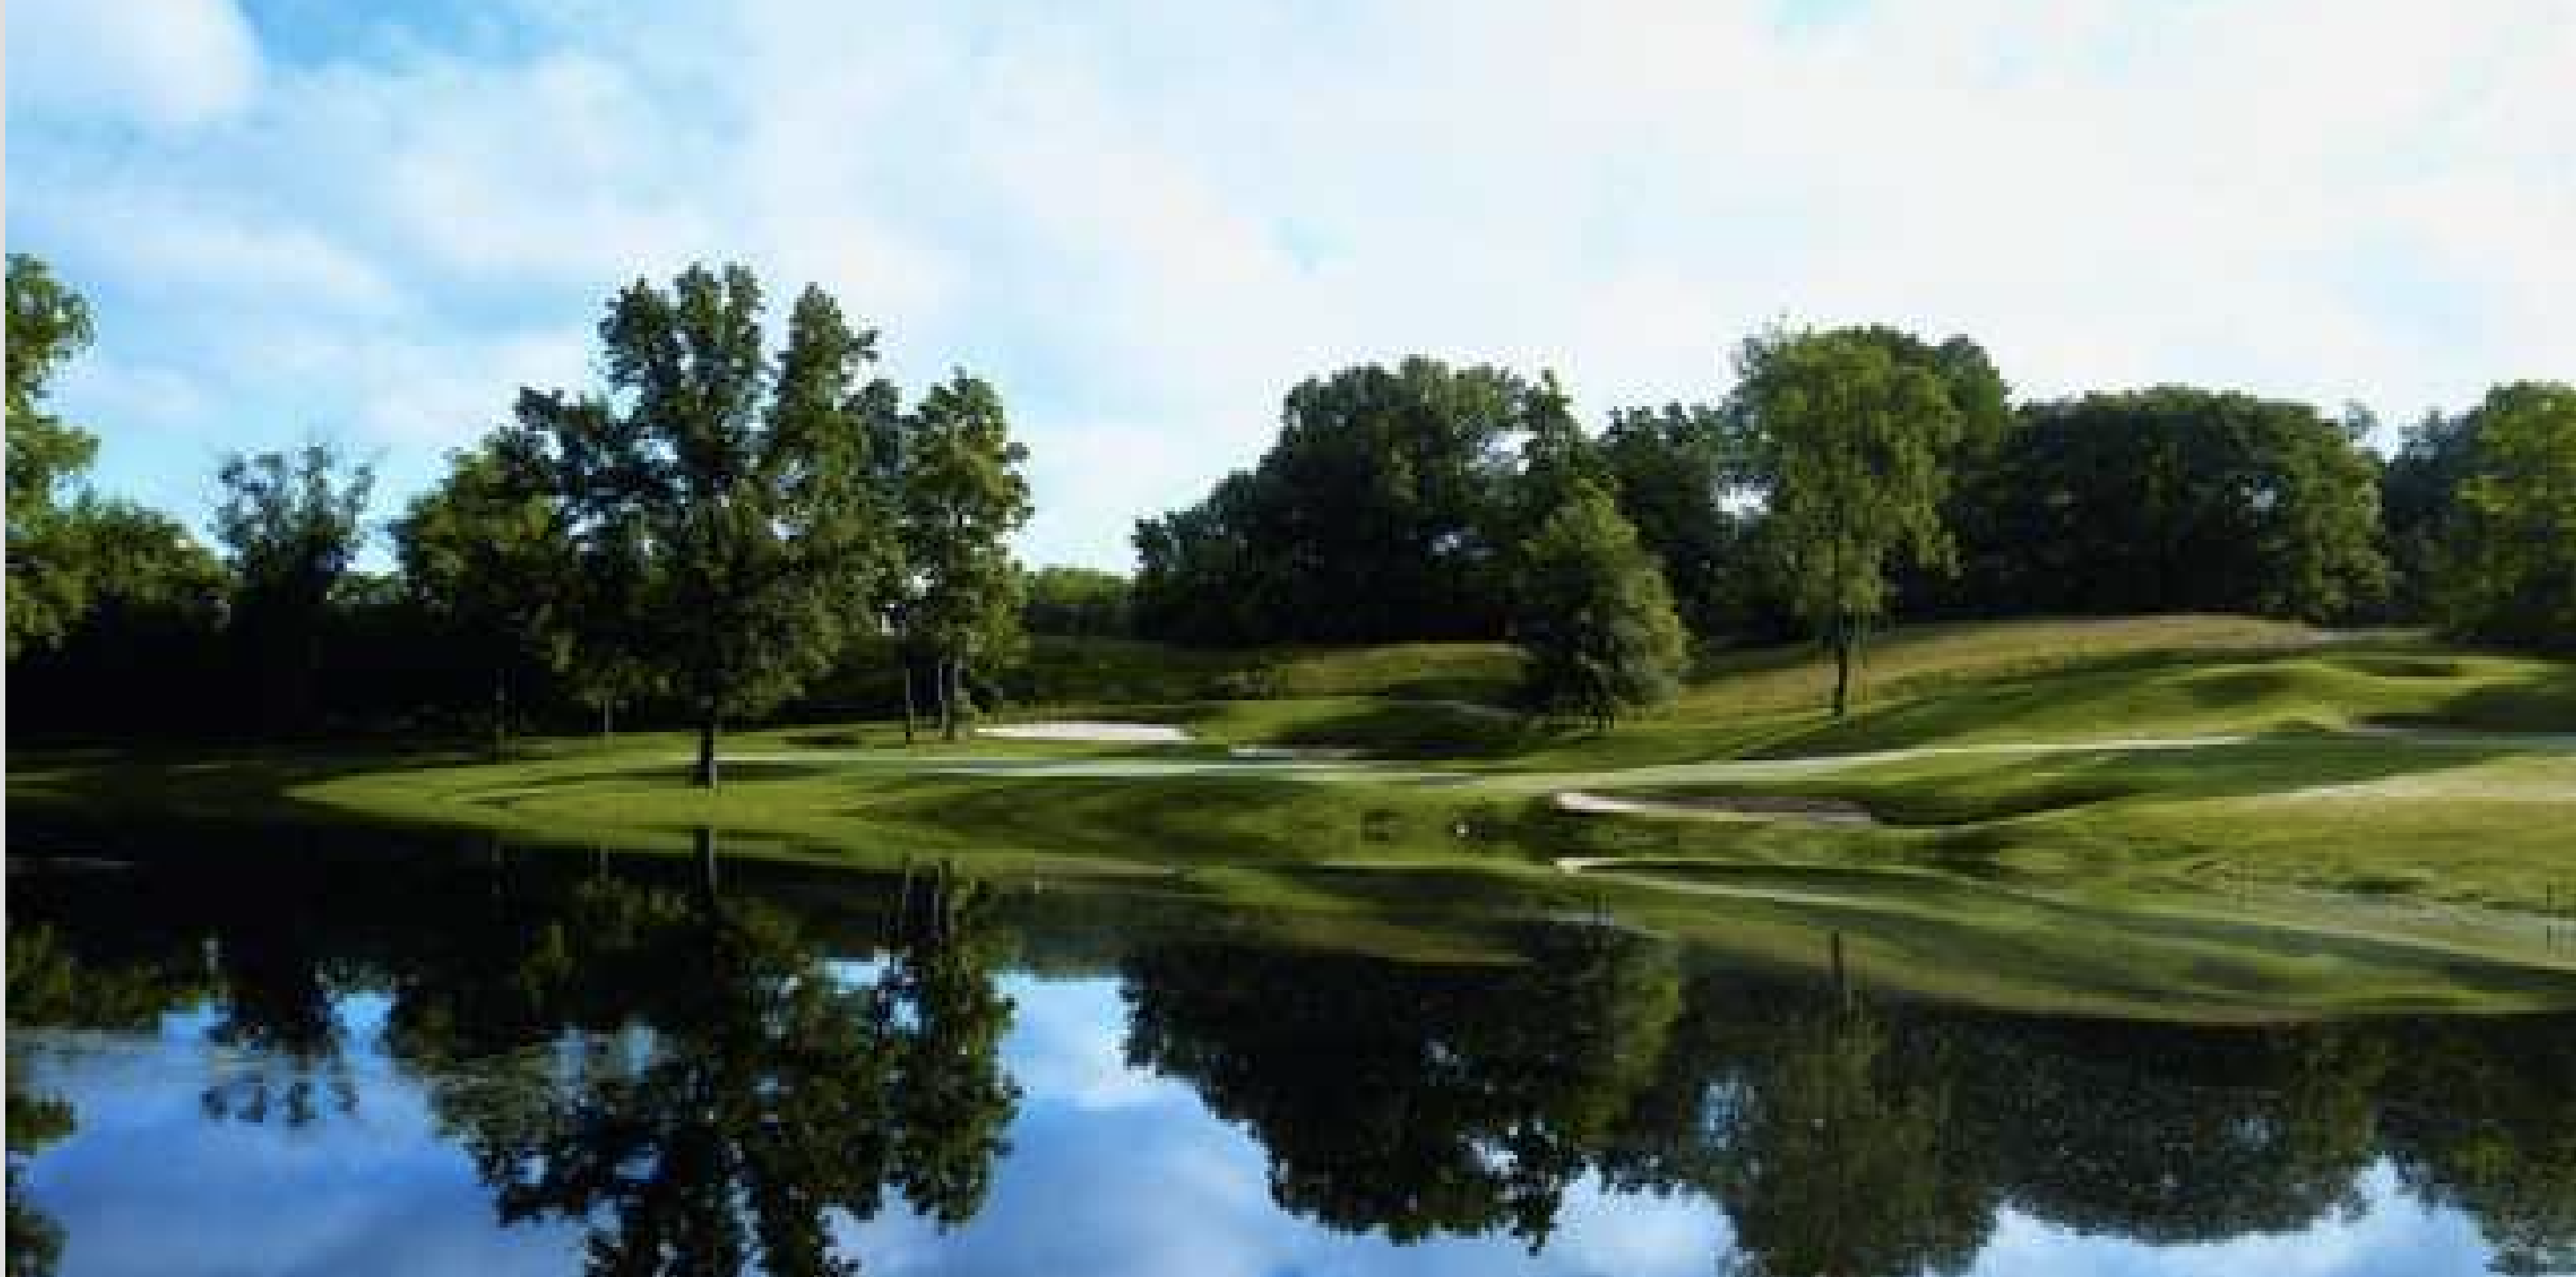 Region 7 HFMA Golf Tournament and Notre Dame Campus Tour